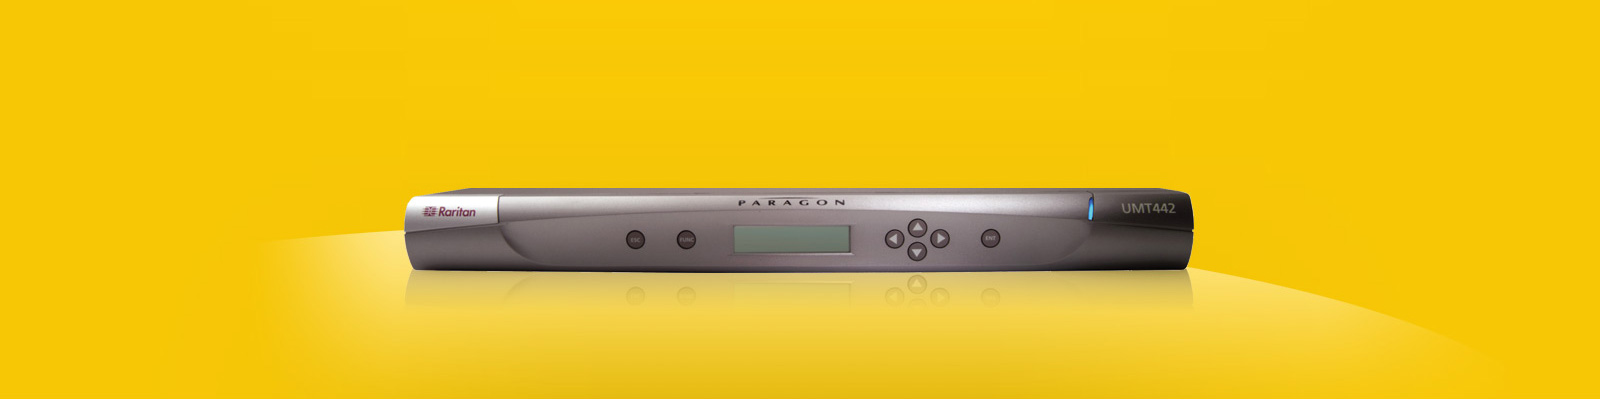 Raritan Paragon 2 User, 42 Port High Density CATx KVM Switch - Multi-Platform: PS/2, USB, Sun and SGI